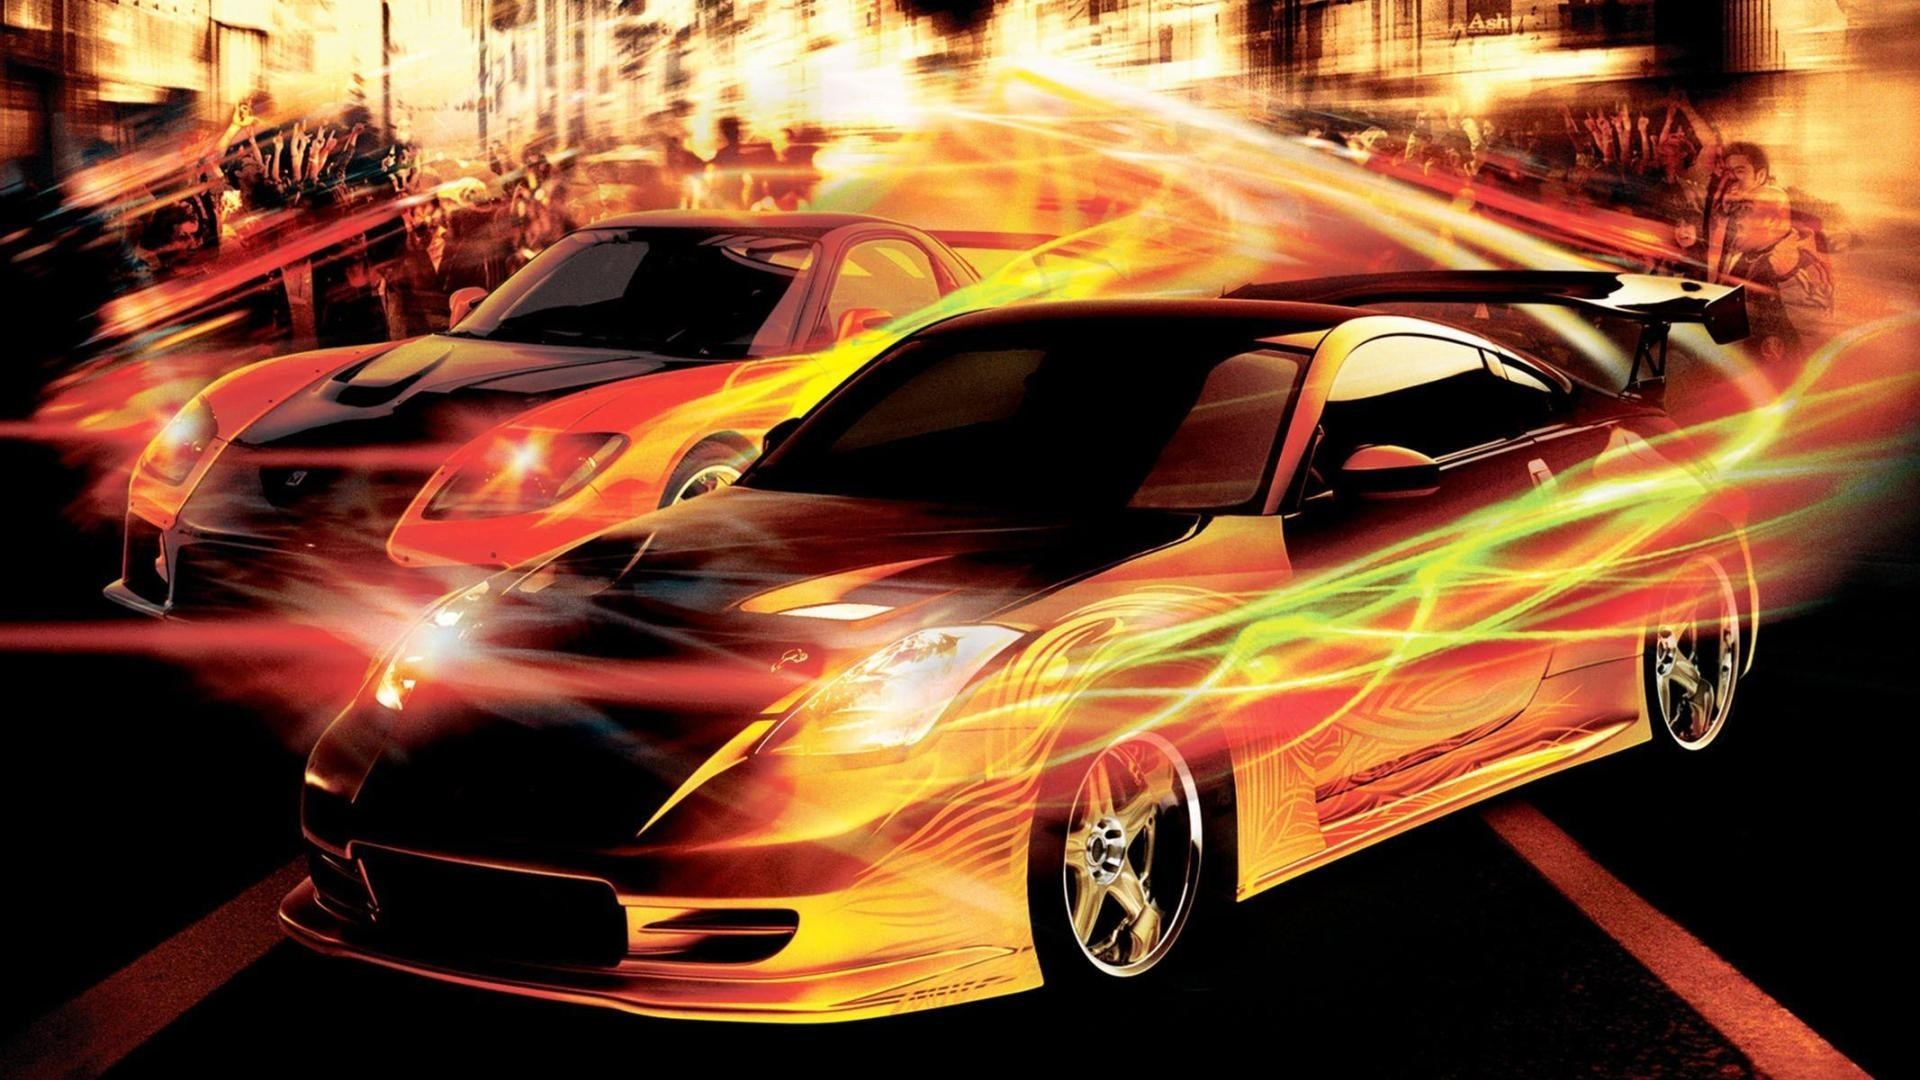 Fast And Furious Cars Hd Wallpapers Hd Fast And Furious Cars Backgrounds Pixelstalk Net